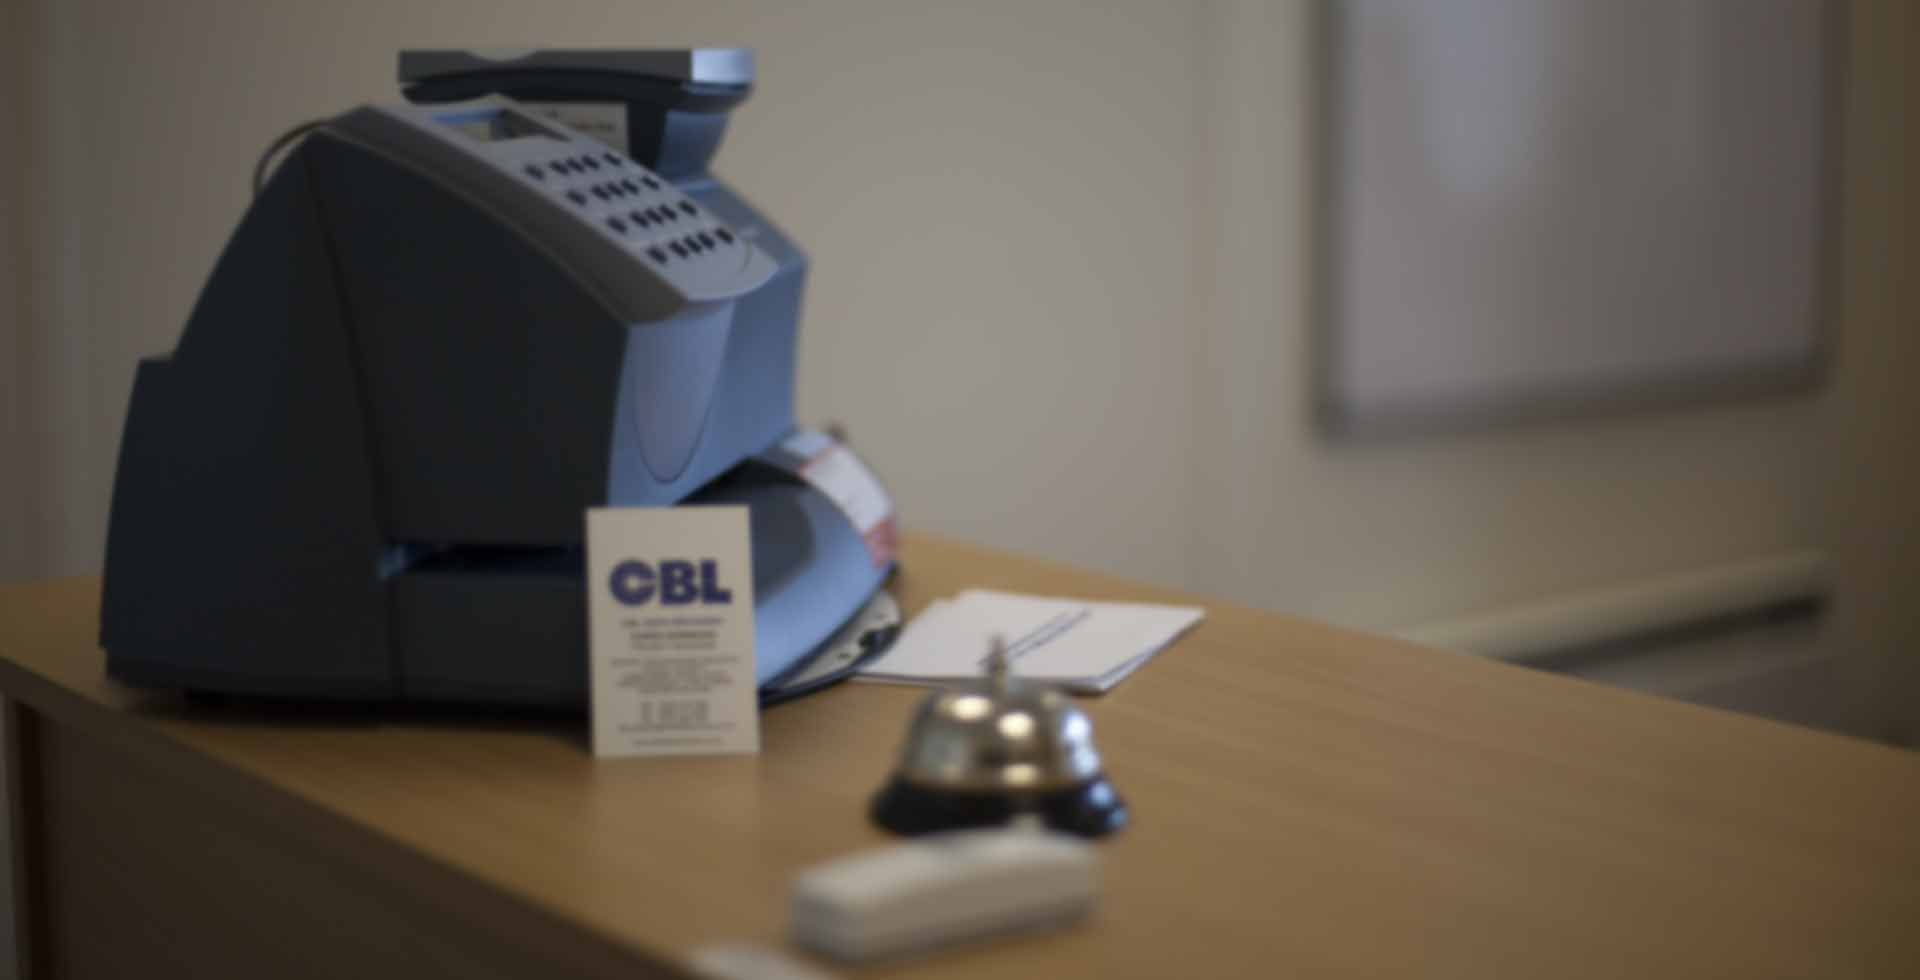 CBL Data Recovery next day delivery